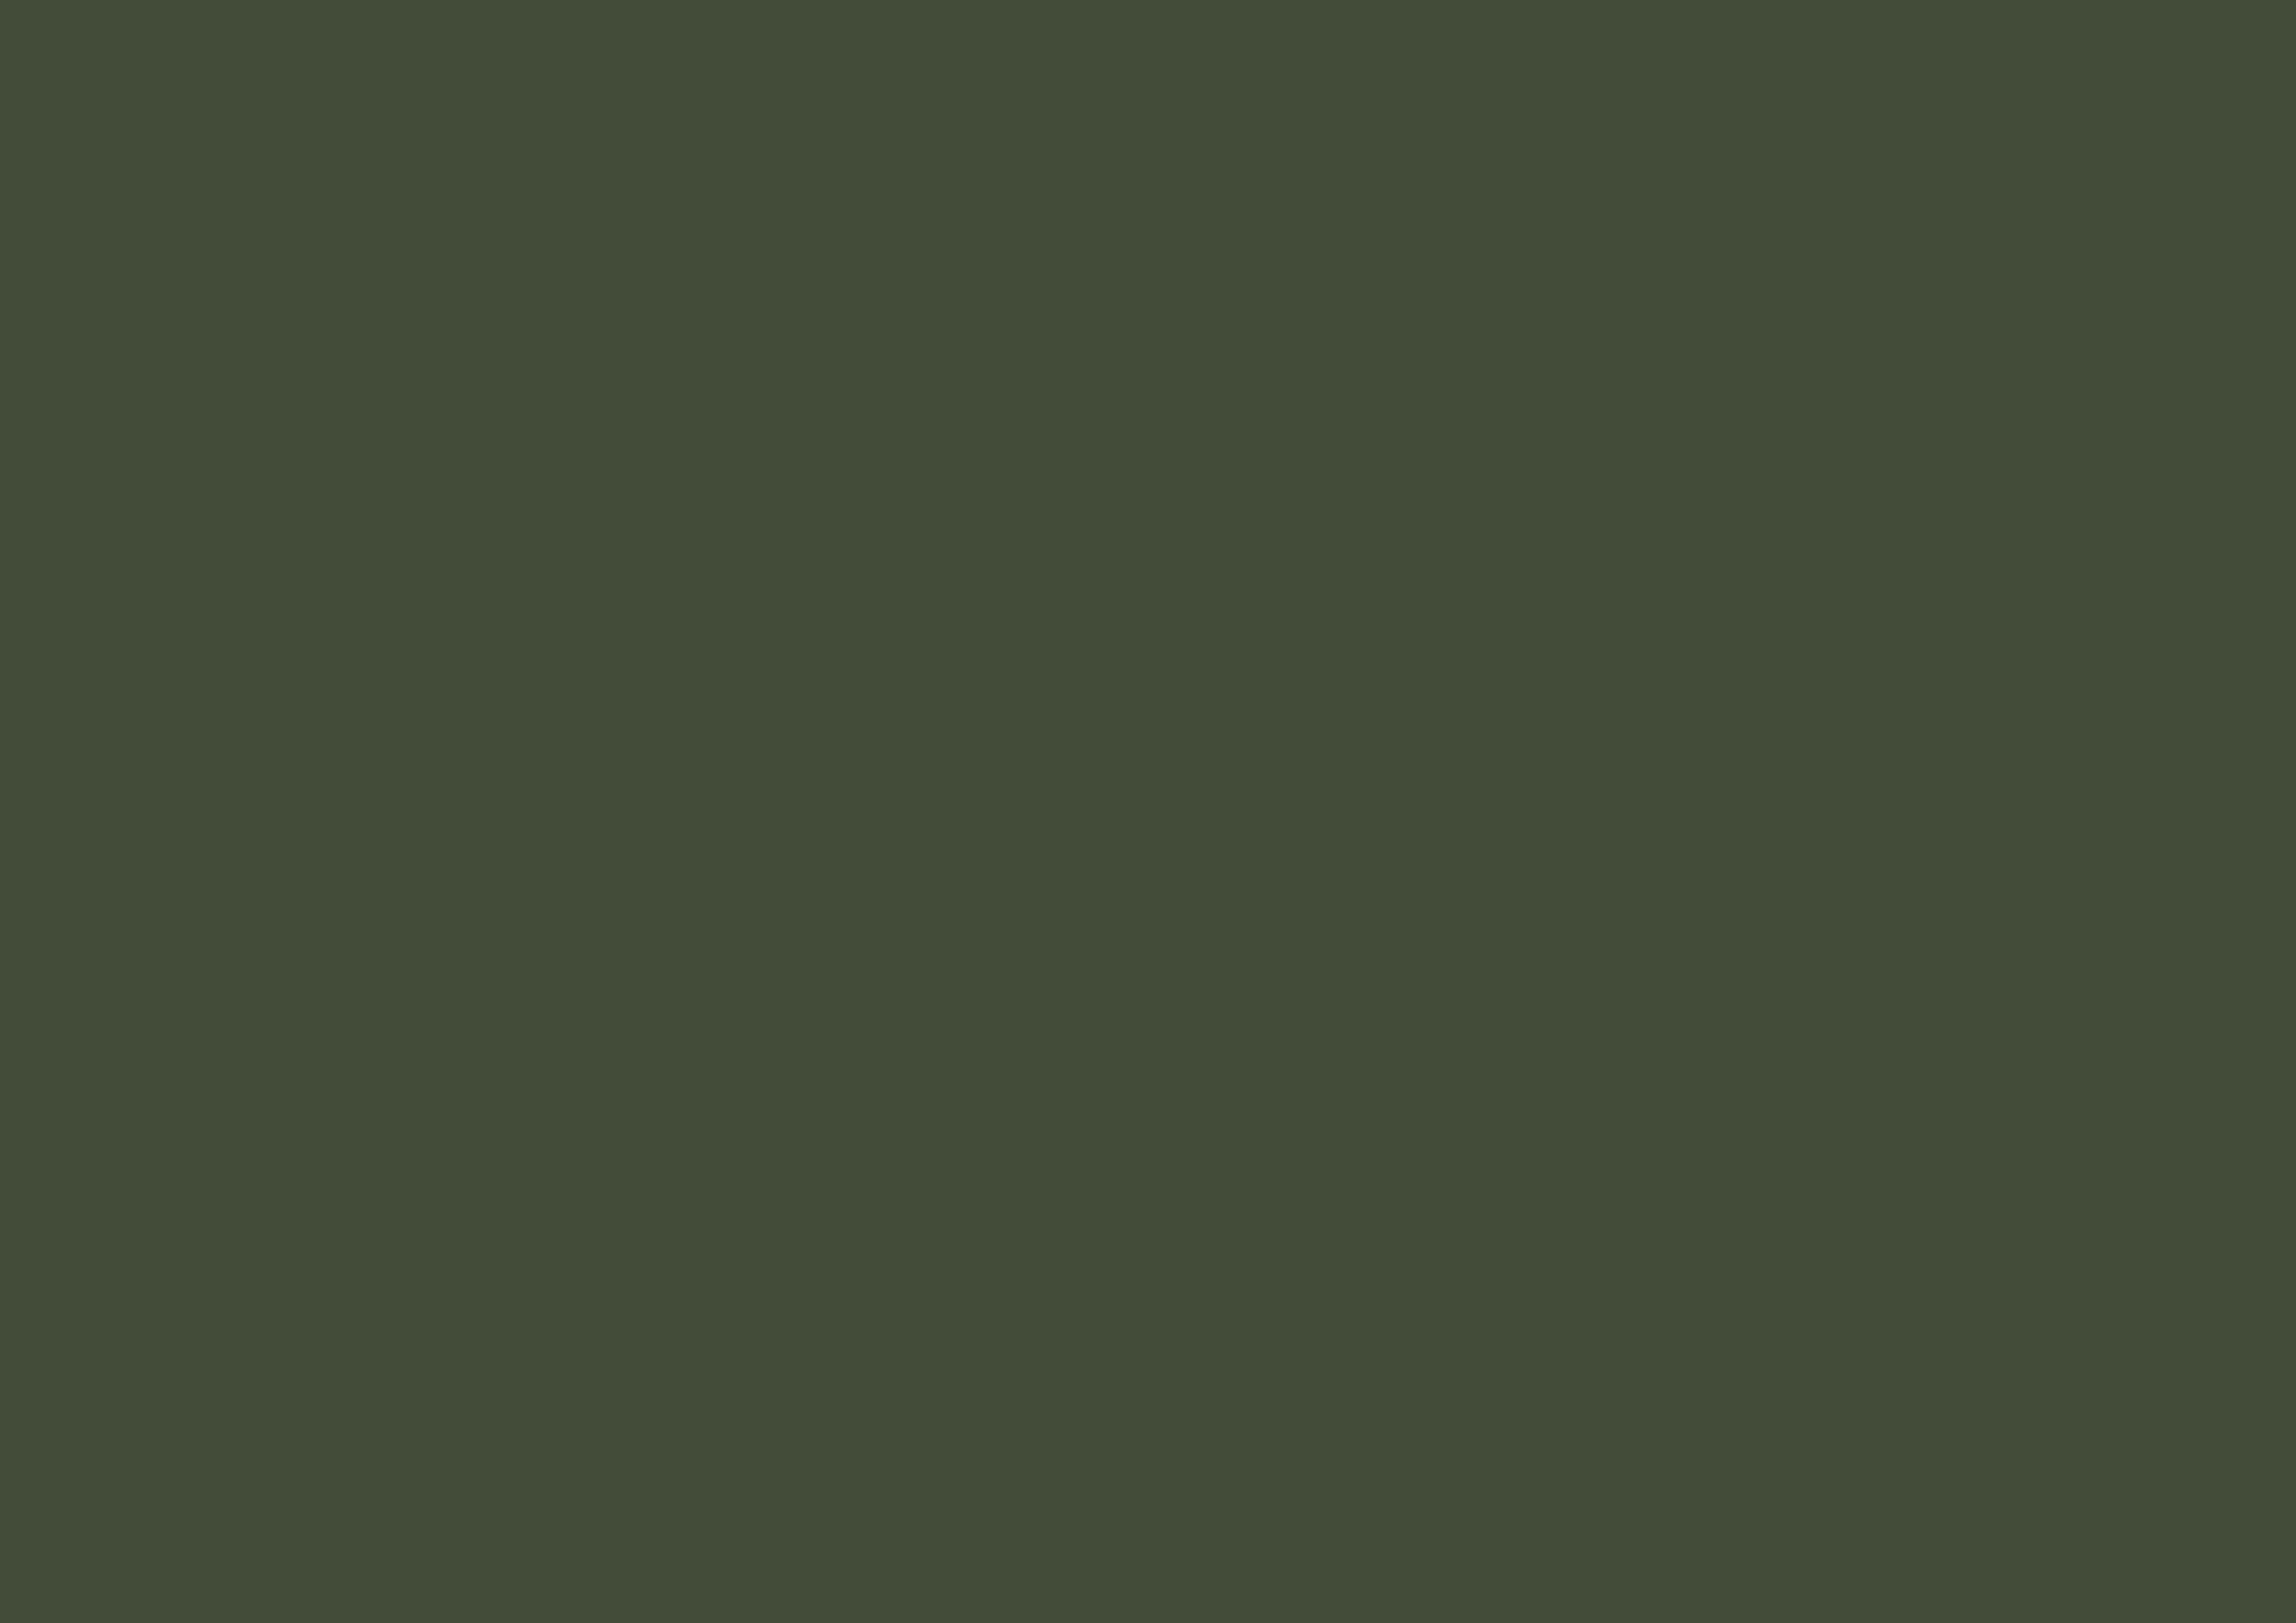 3508x2480 Rifle Green Solid Color Background